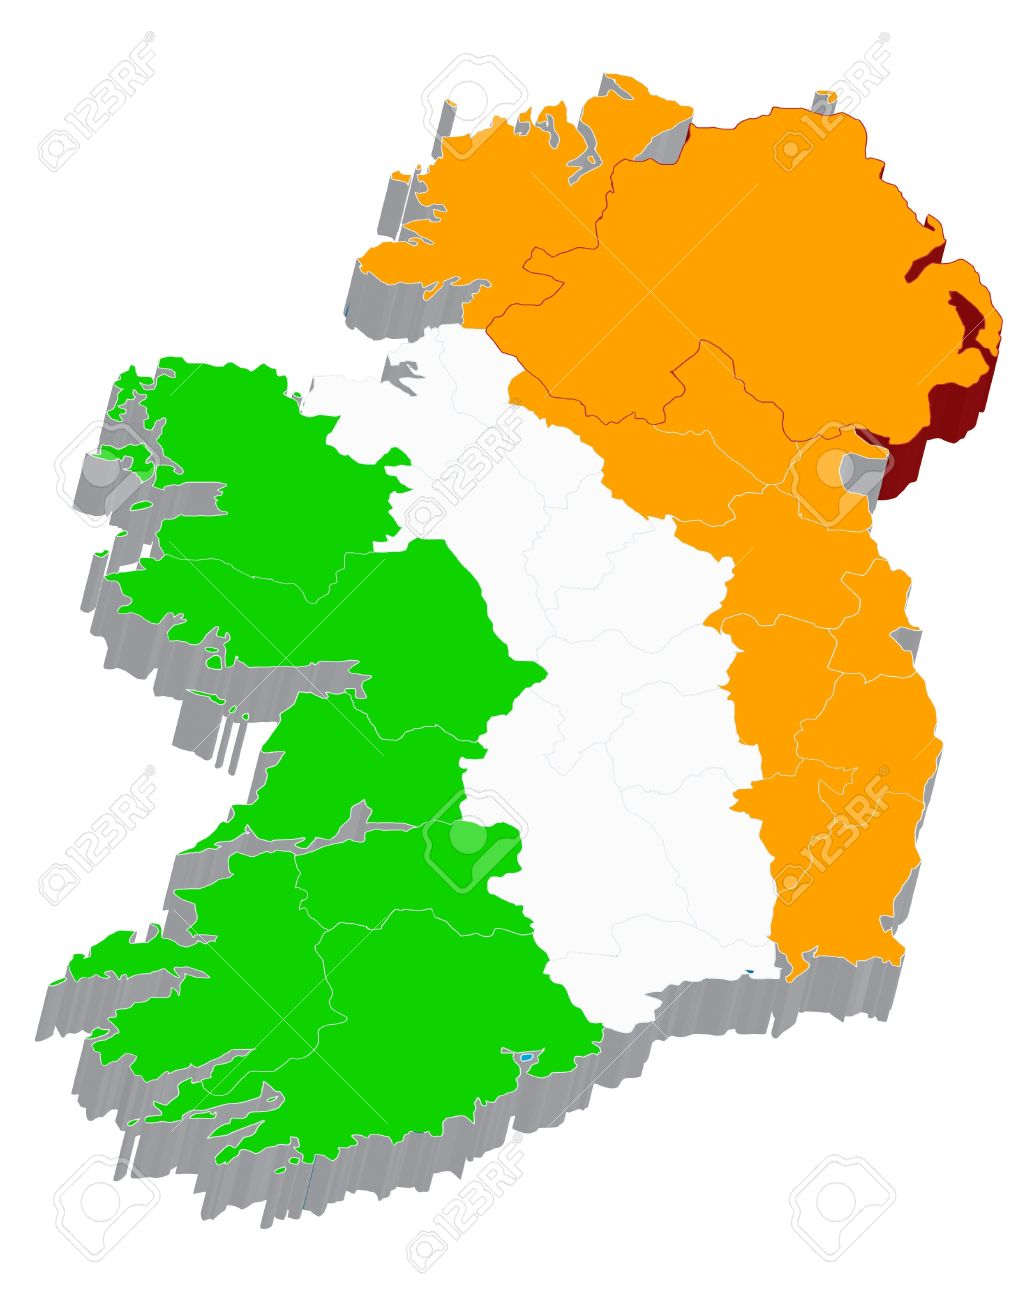 Map Of Ireland 3d.There Is A 3d Map Of Ireland With Flag On